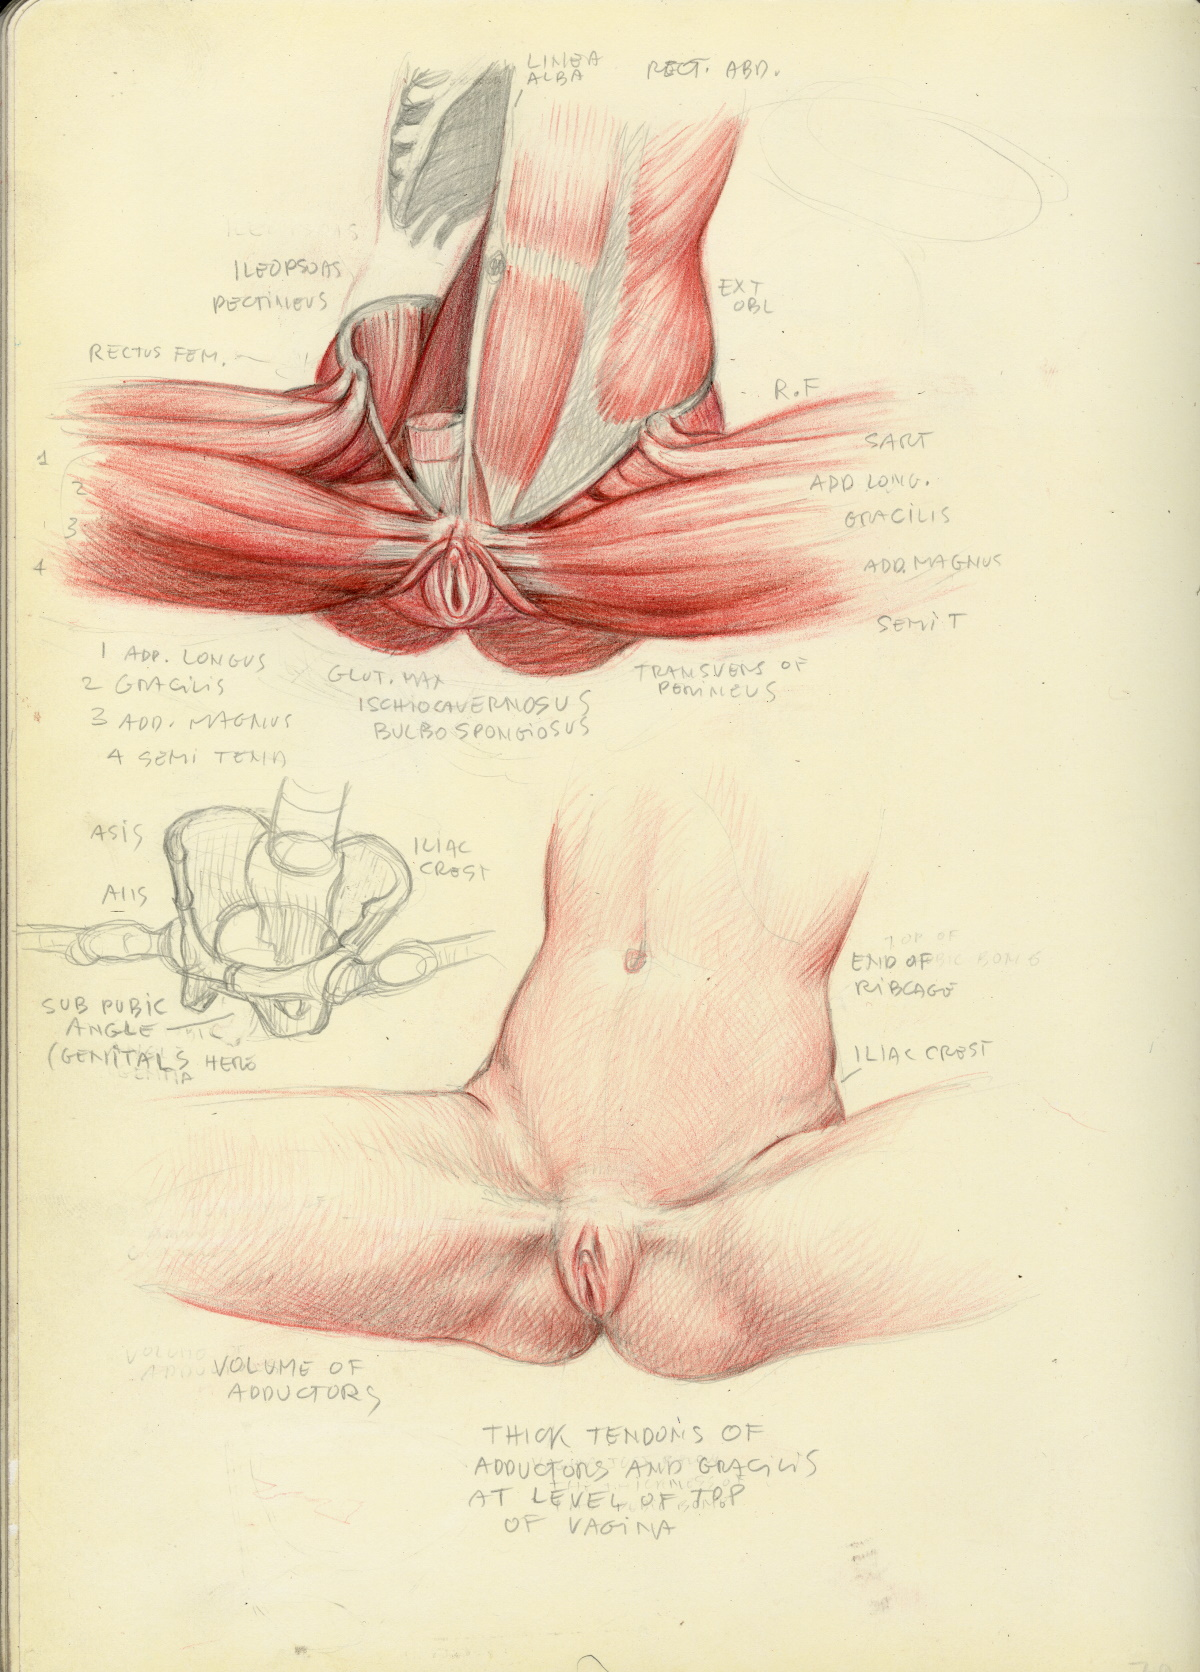 female pelvis, drawing and anatomical study